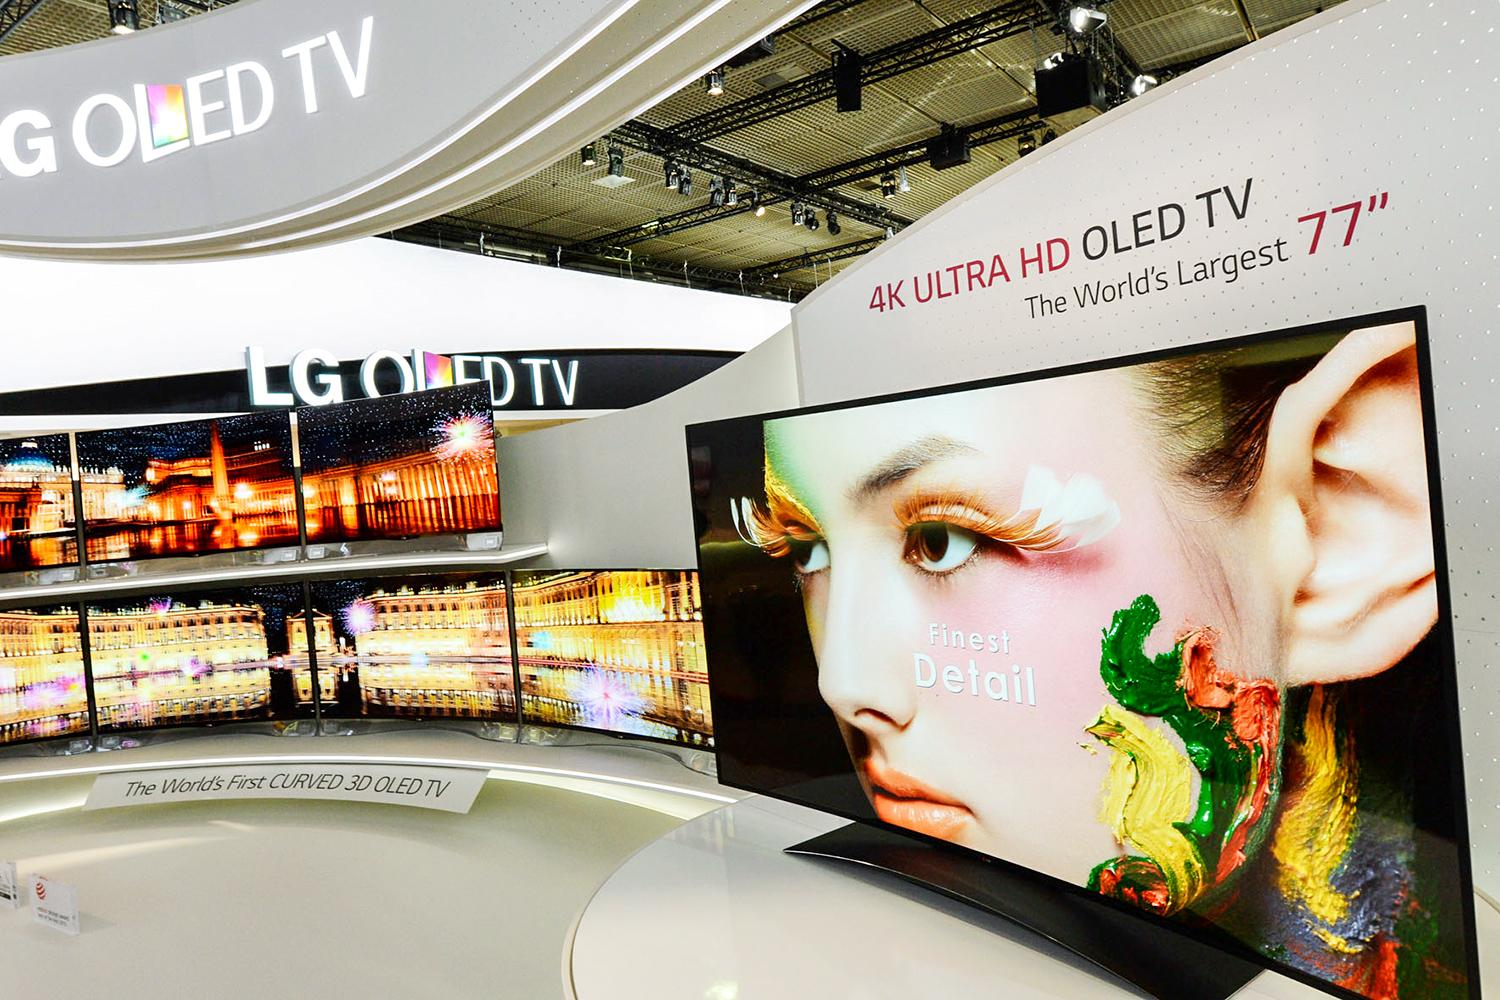 lg unveils 77 inch ultra hd curved oled television at ifa. Black Bedroom Furniture Sets. Home Design Ideas